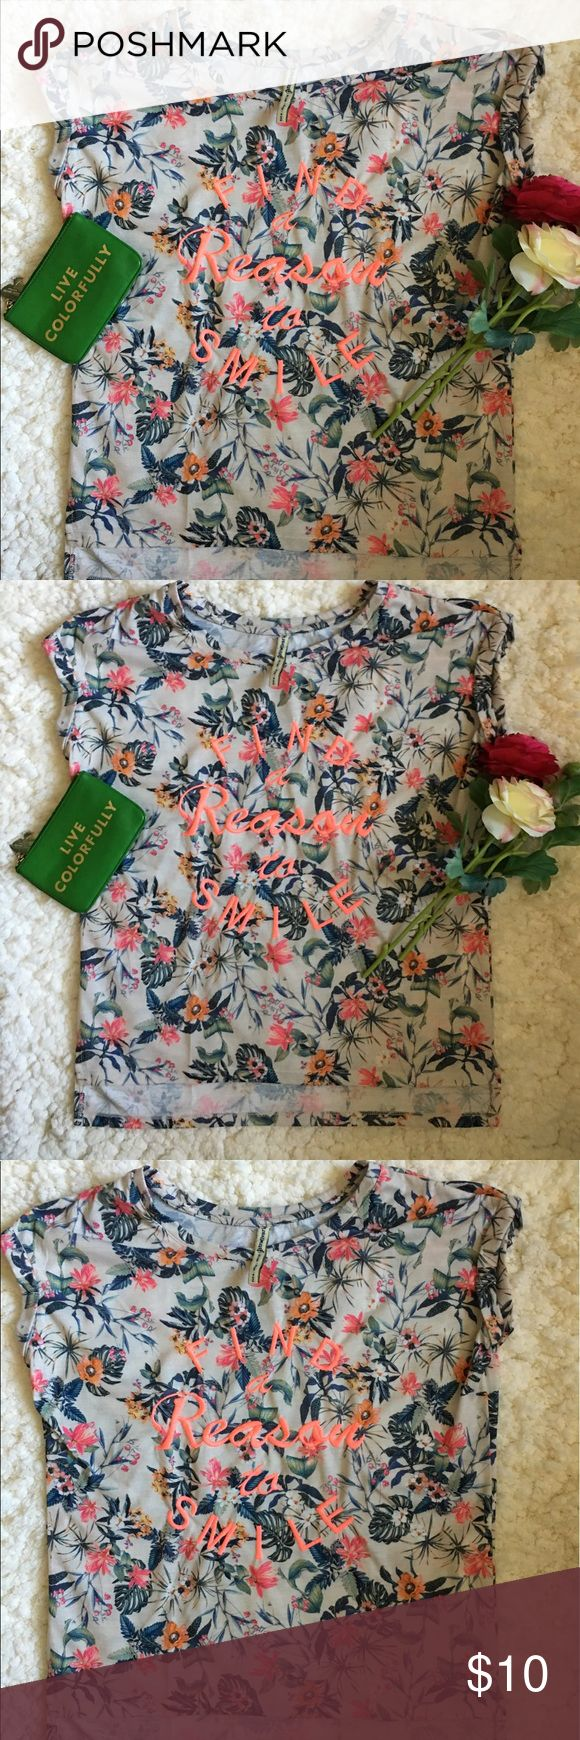 🌺🌸Stradivarius Shirt🌺🌸 🌺🌸Great used condition Top by Stradivarius Floral Top in size Medium🌺🌸 This is a very colorful Floral Top🌺🌸 Shows minor wear such as slight piling🌺🌸 Has folded sleeves🌺🌸Please see all photos🌺🌸 stradivarius Tops